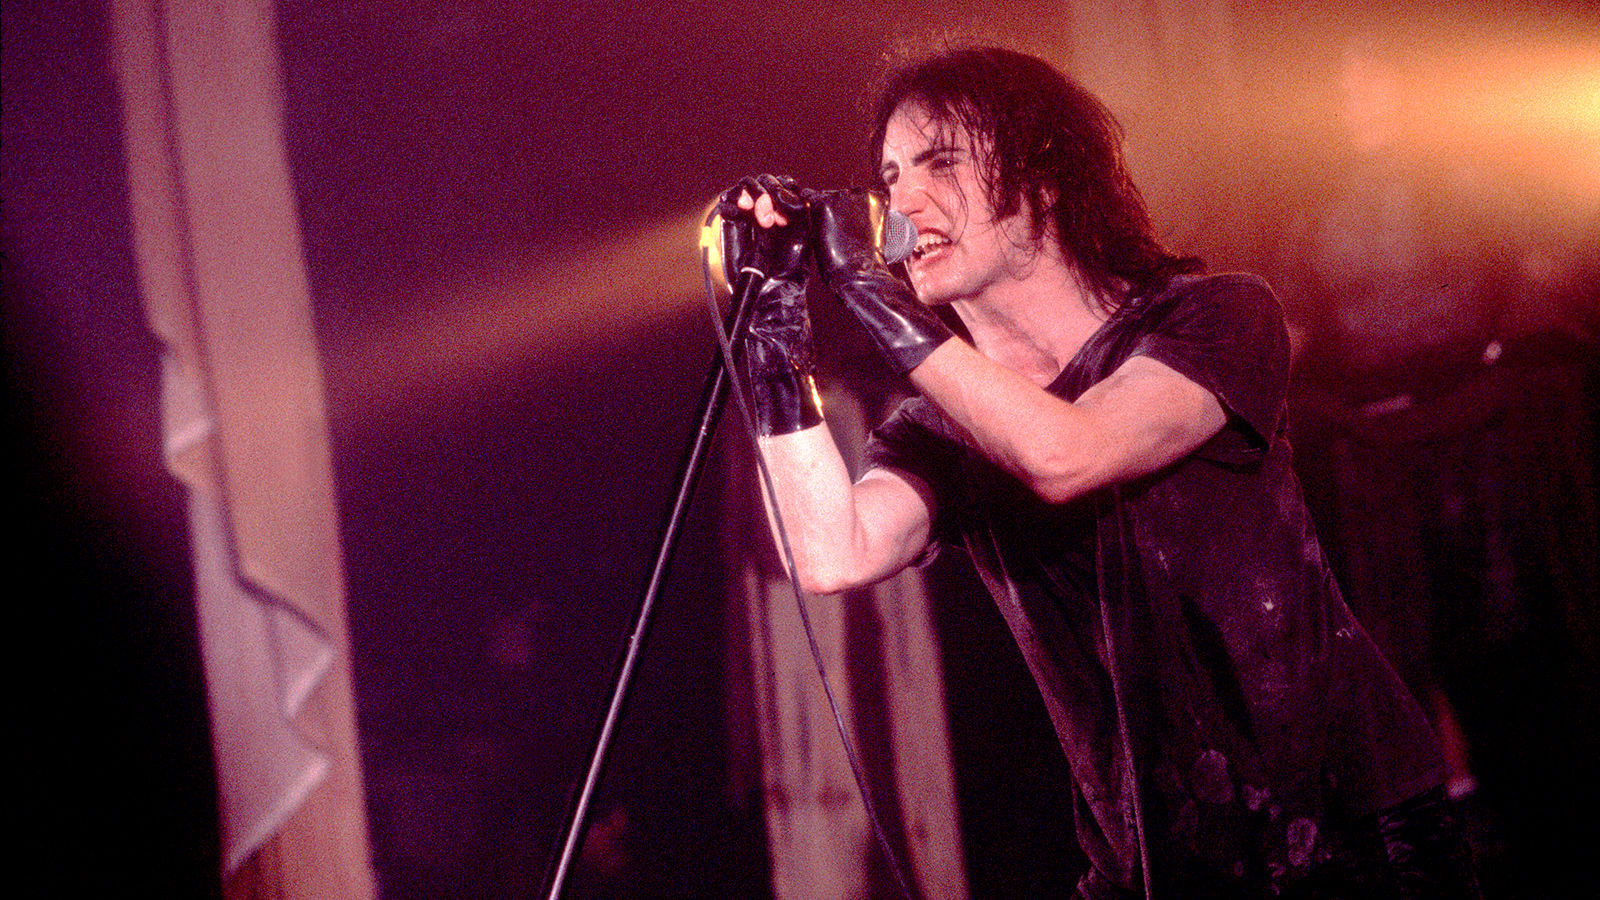 Fan Poll: 5 Best Nine Inch Nails Songs